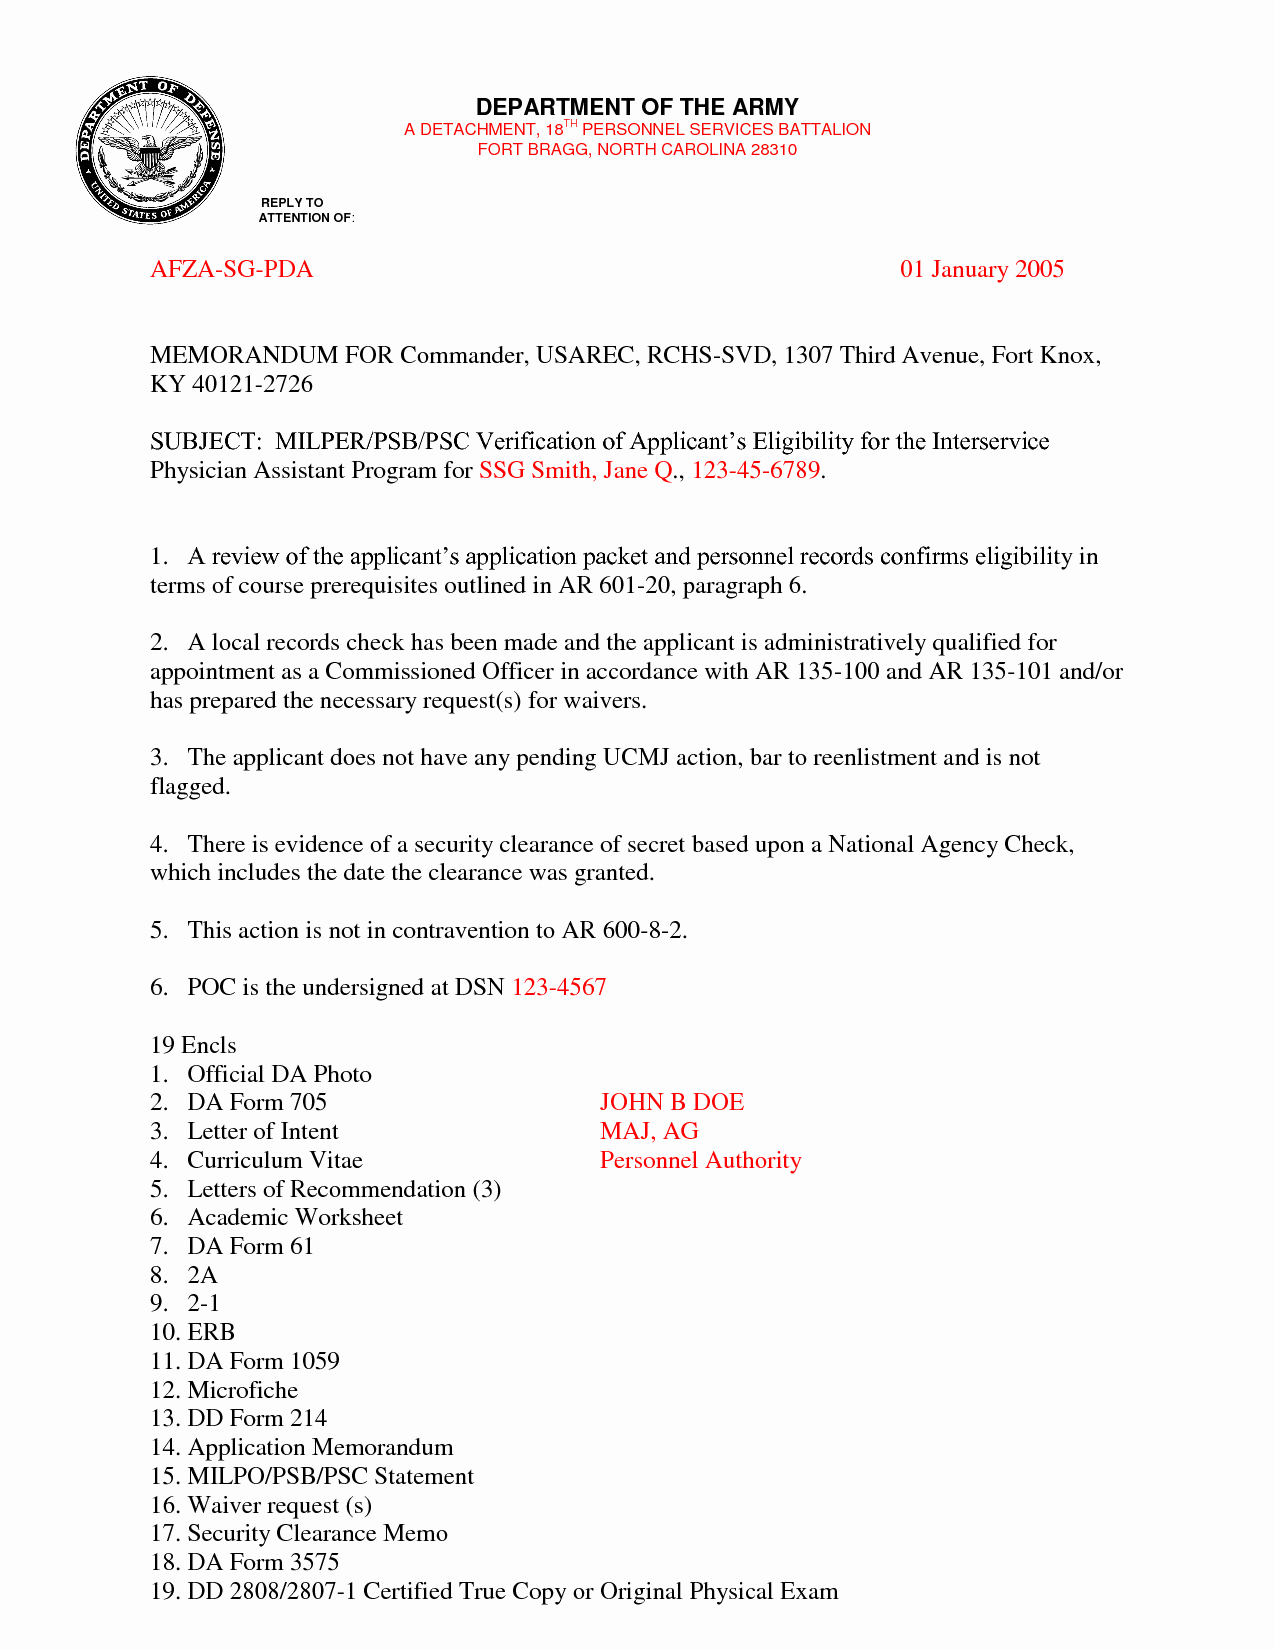 Letter Of Recommendation Army Unique Best S Of Examples Military Letters Army